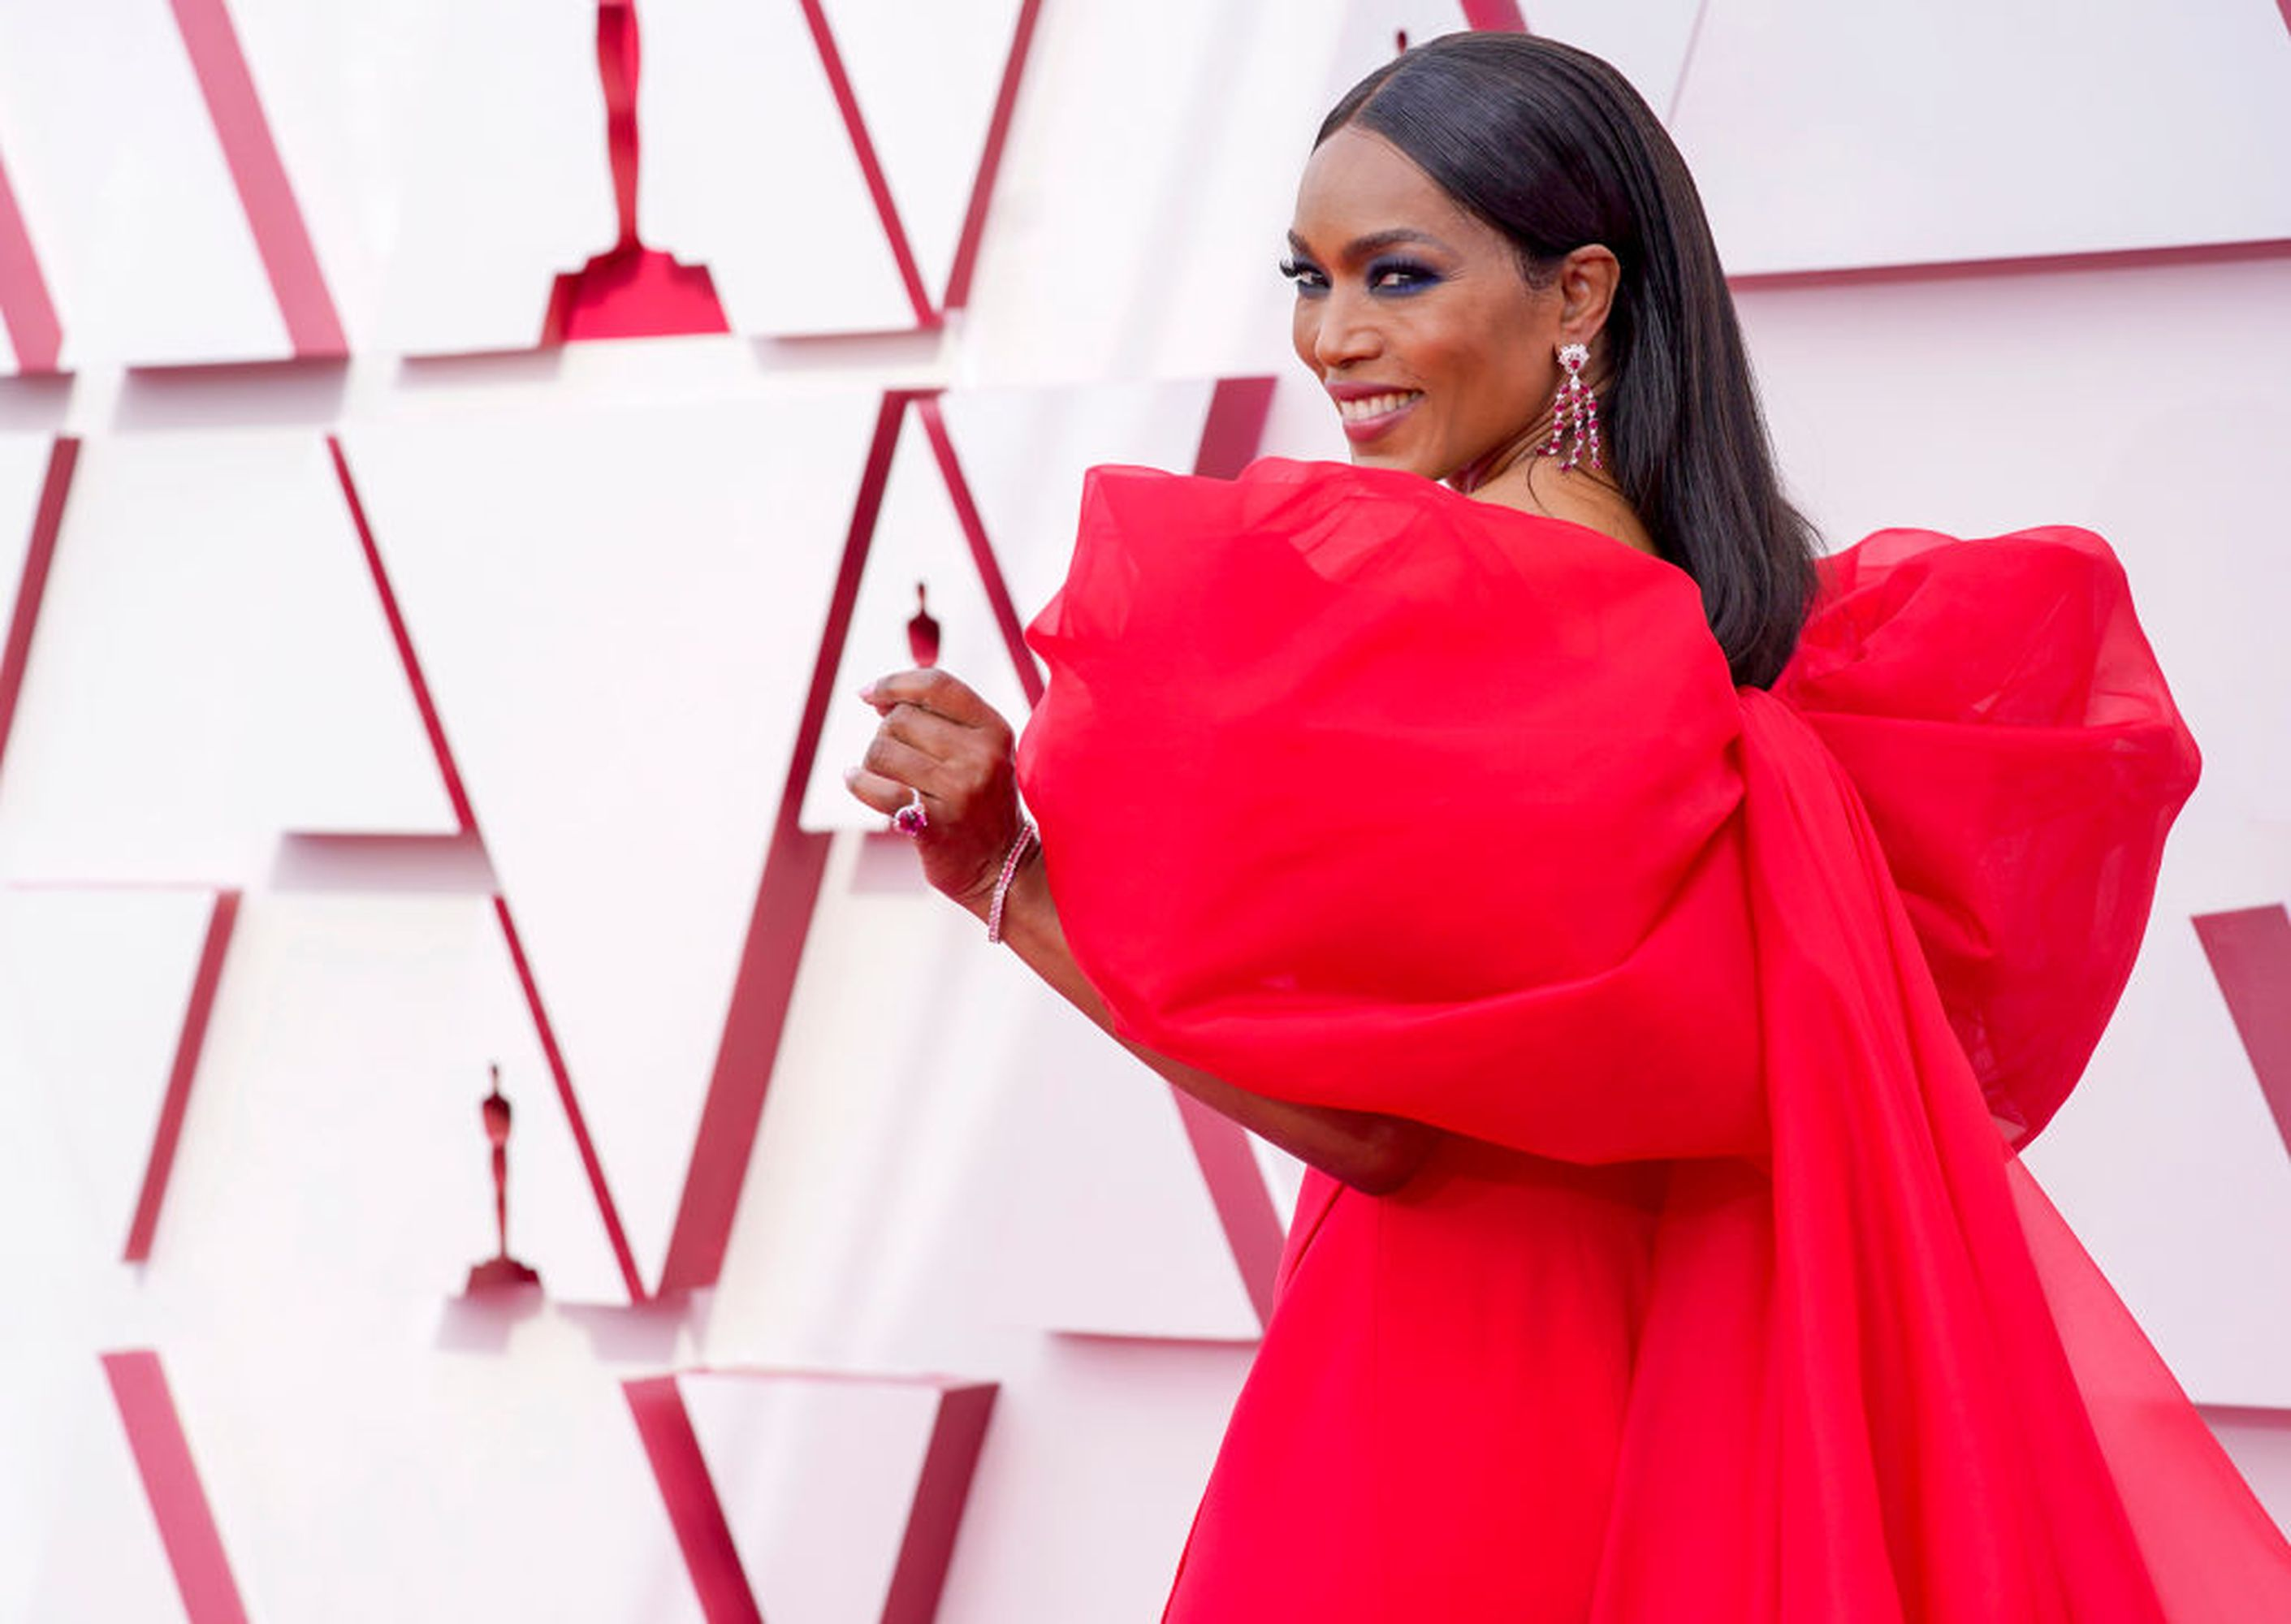 LOS ANGELES, CA - April 25: Angela Bassett attends the 93rd Annual Academy Awards at Union Station on April 25, 2021 in Los Angeles, California.  (Photo by Chris Bisillo-Ball / Getty Images)